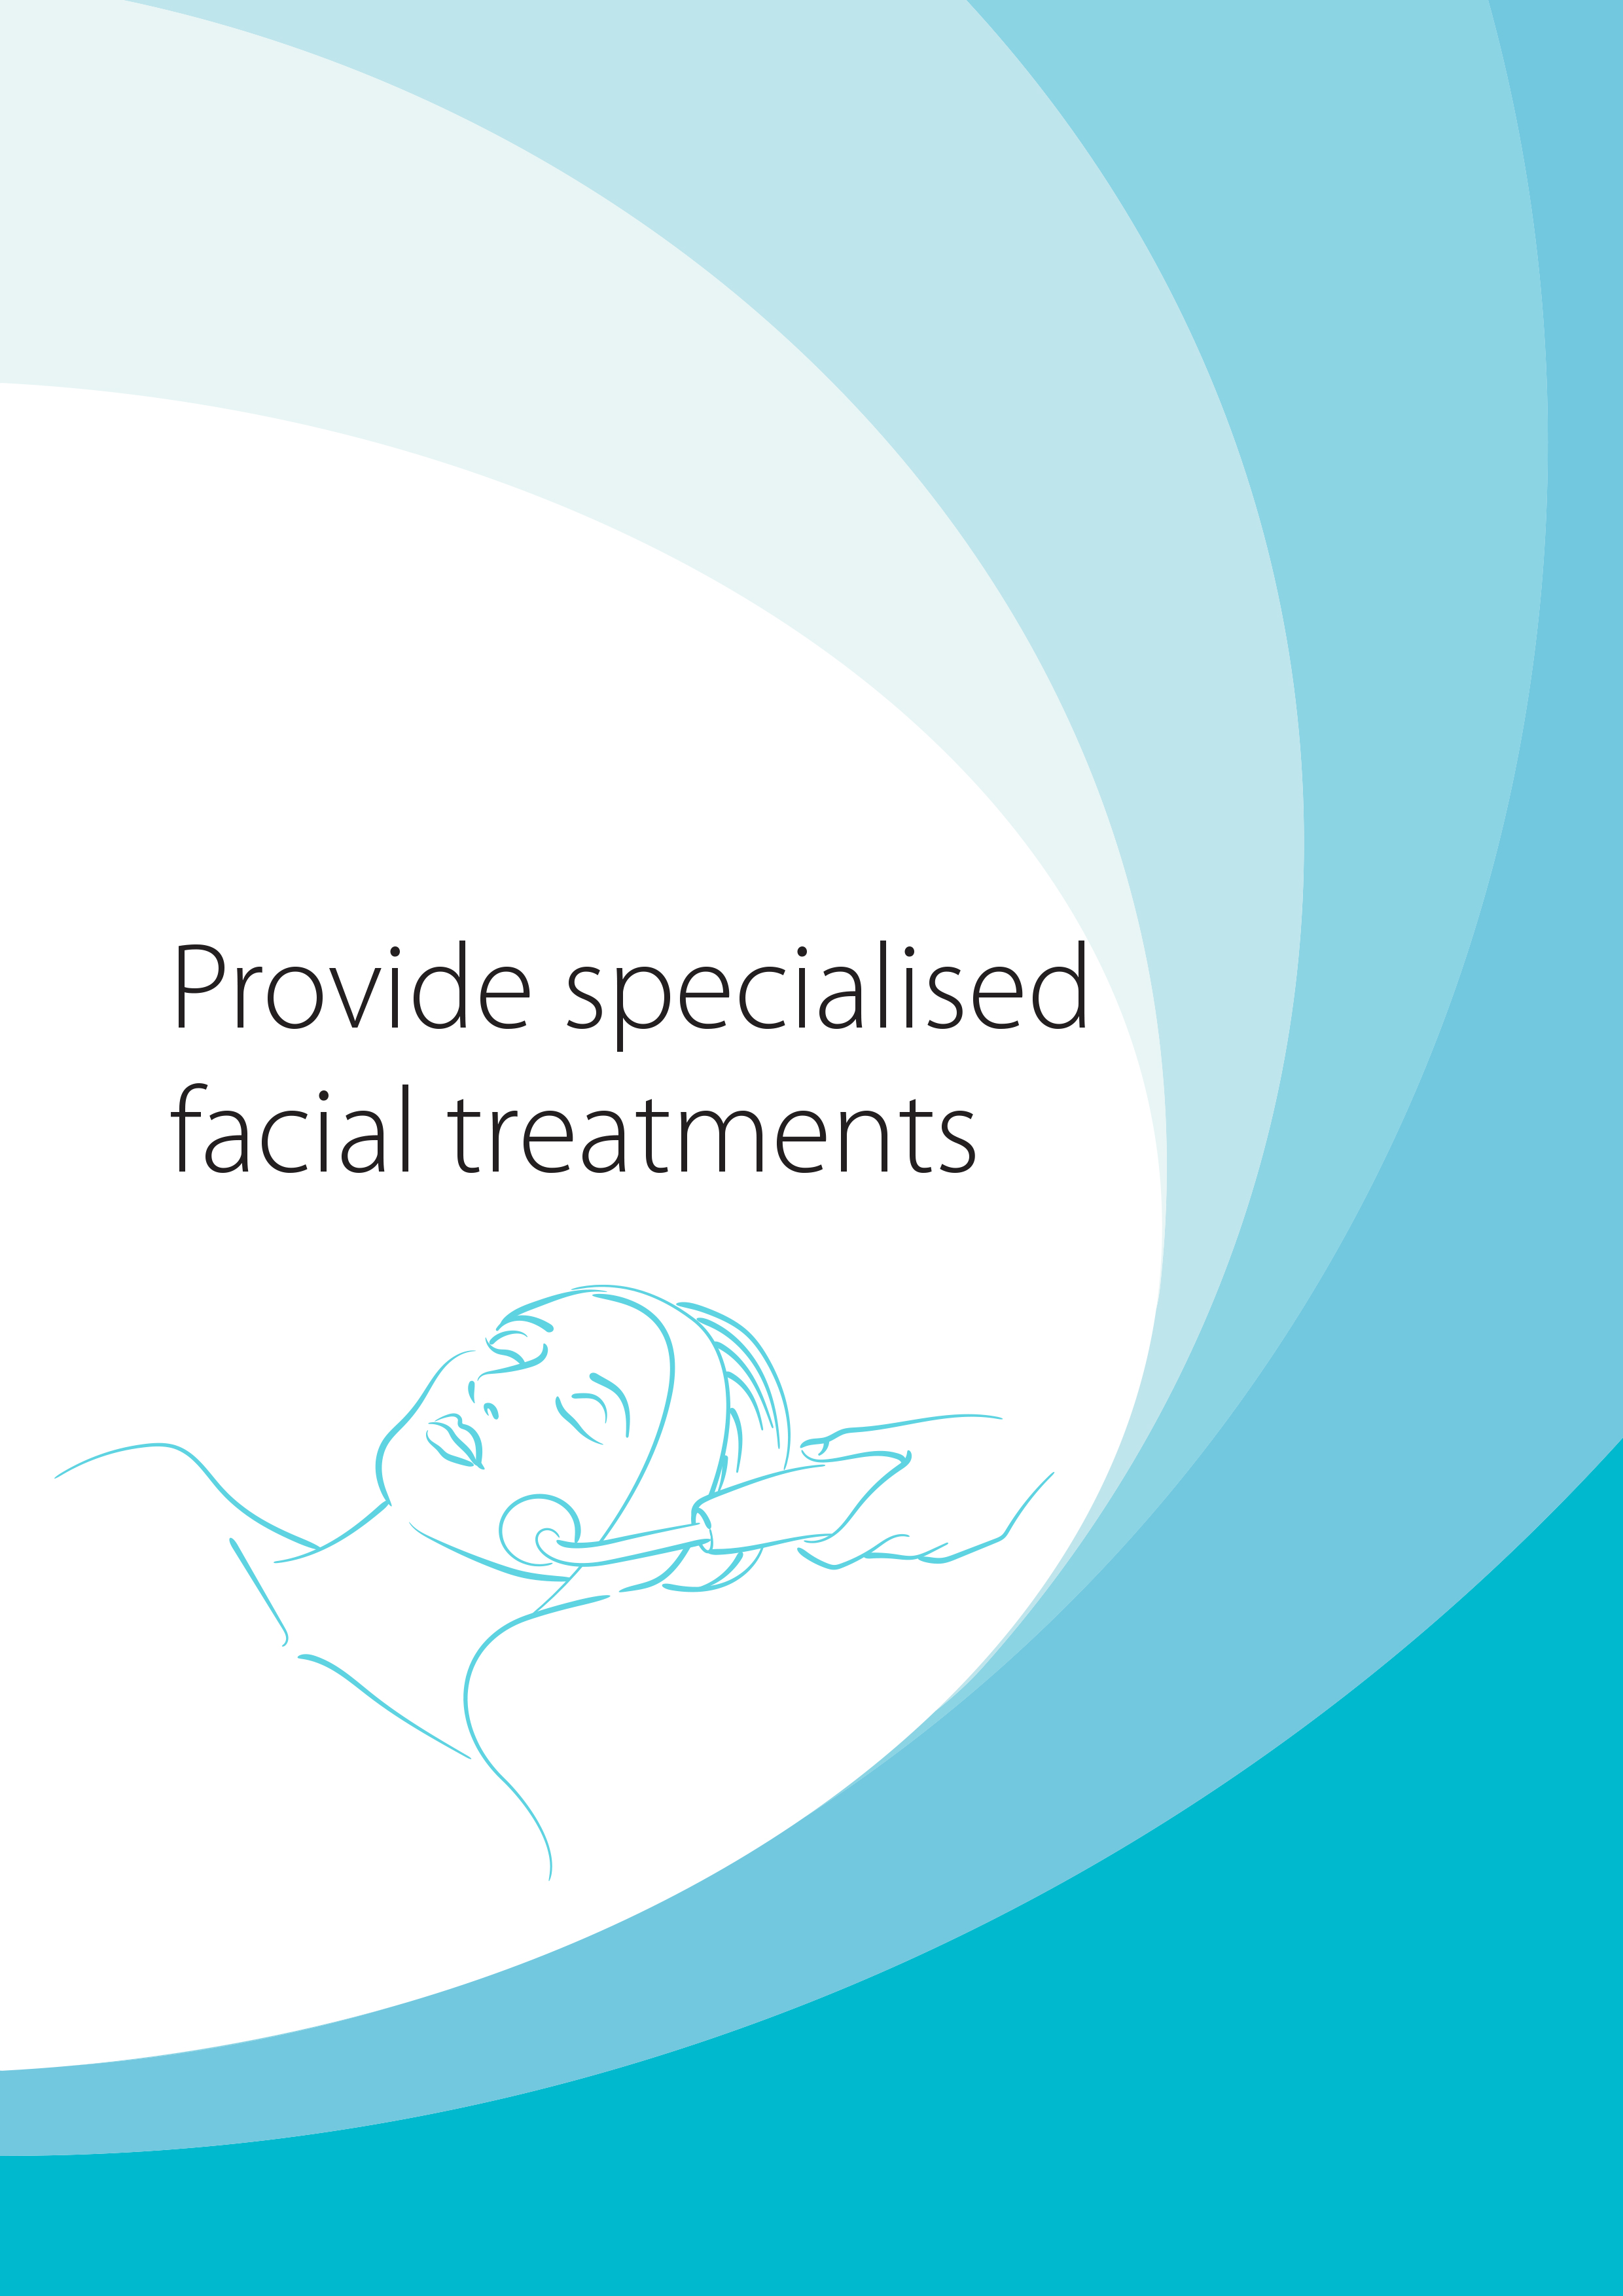 SHBBFAS003 Provide Specialised Facial Treatments